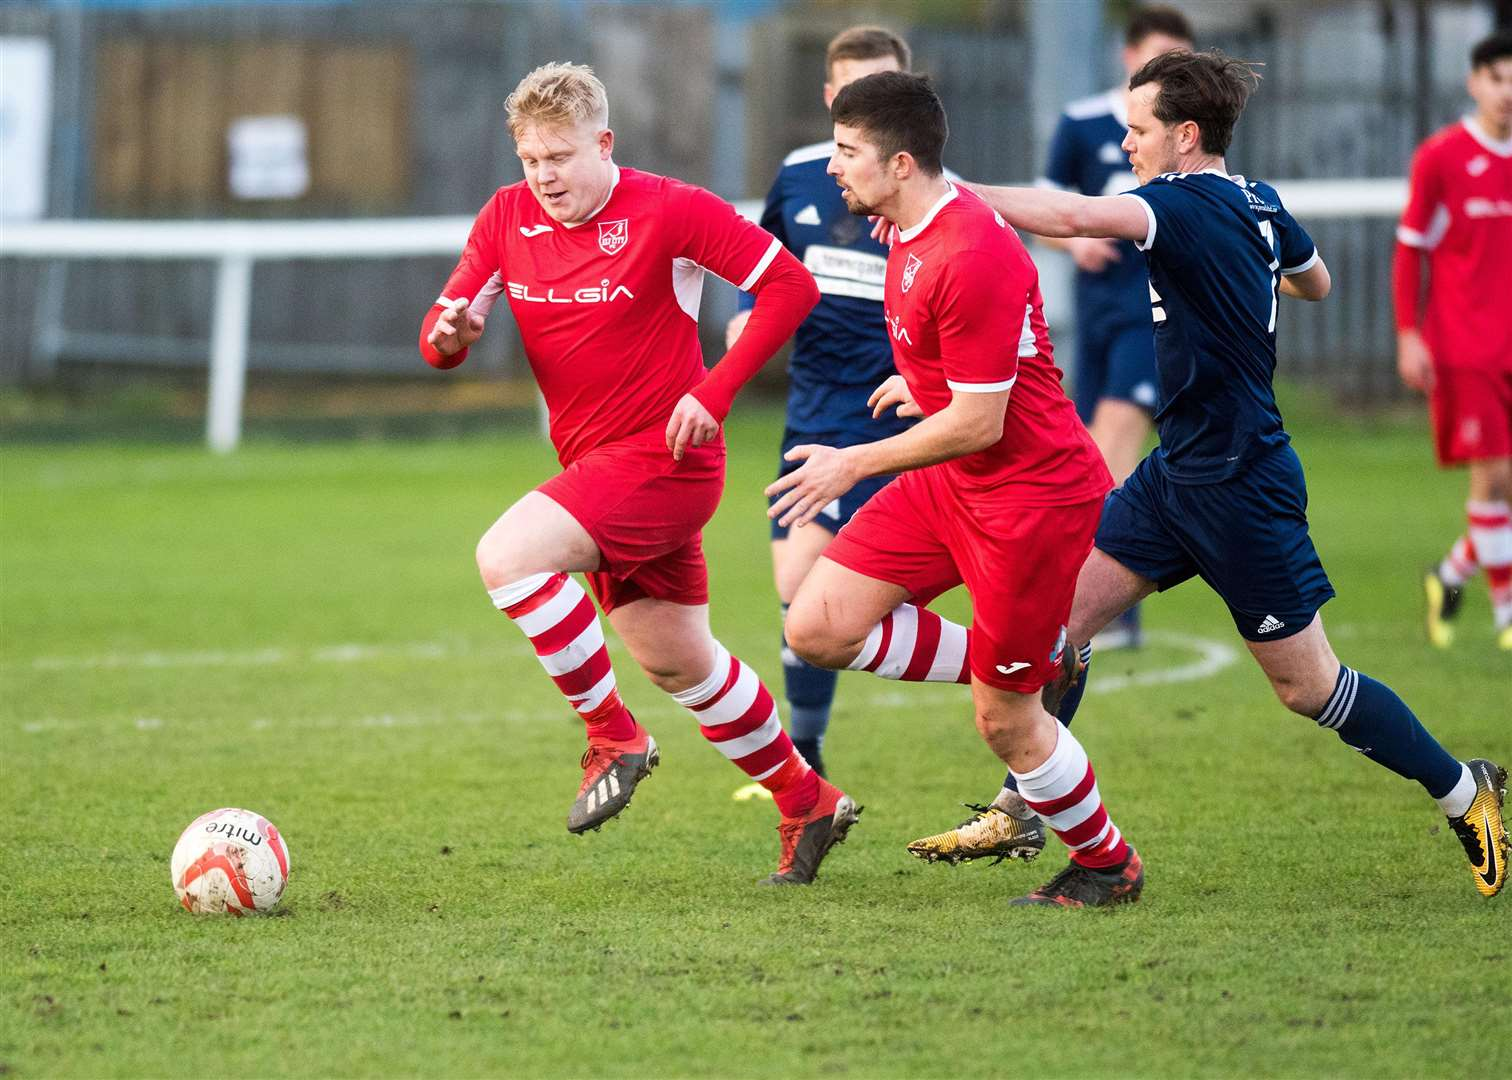 Football 3pm at Ely: Ely City v Haverhill Rovers Steve Holder Ely Picture Mark Westley. (6245877)